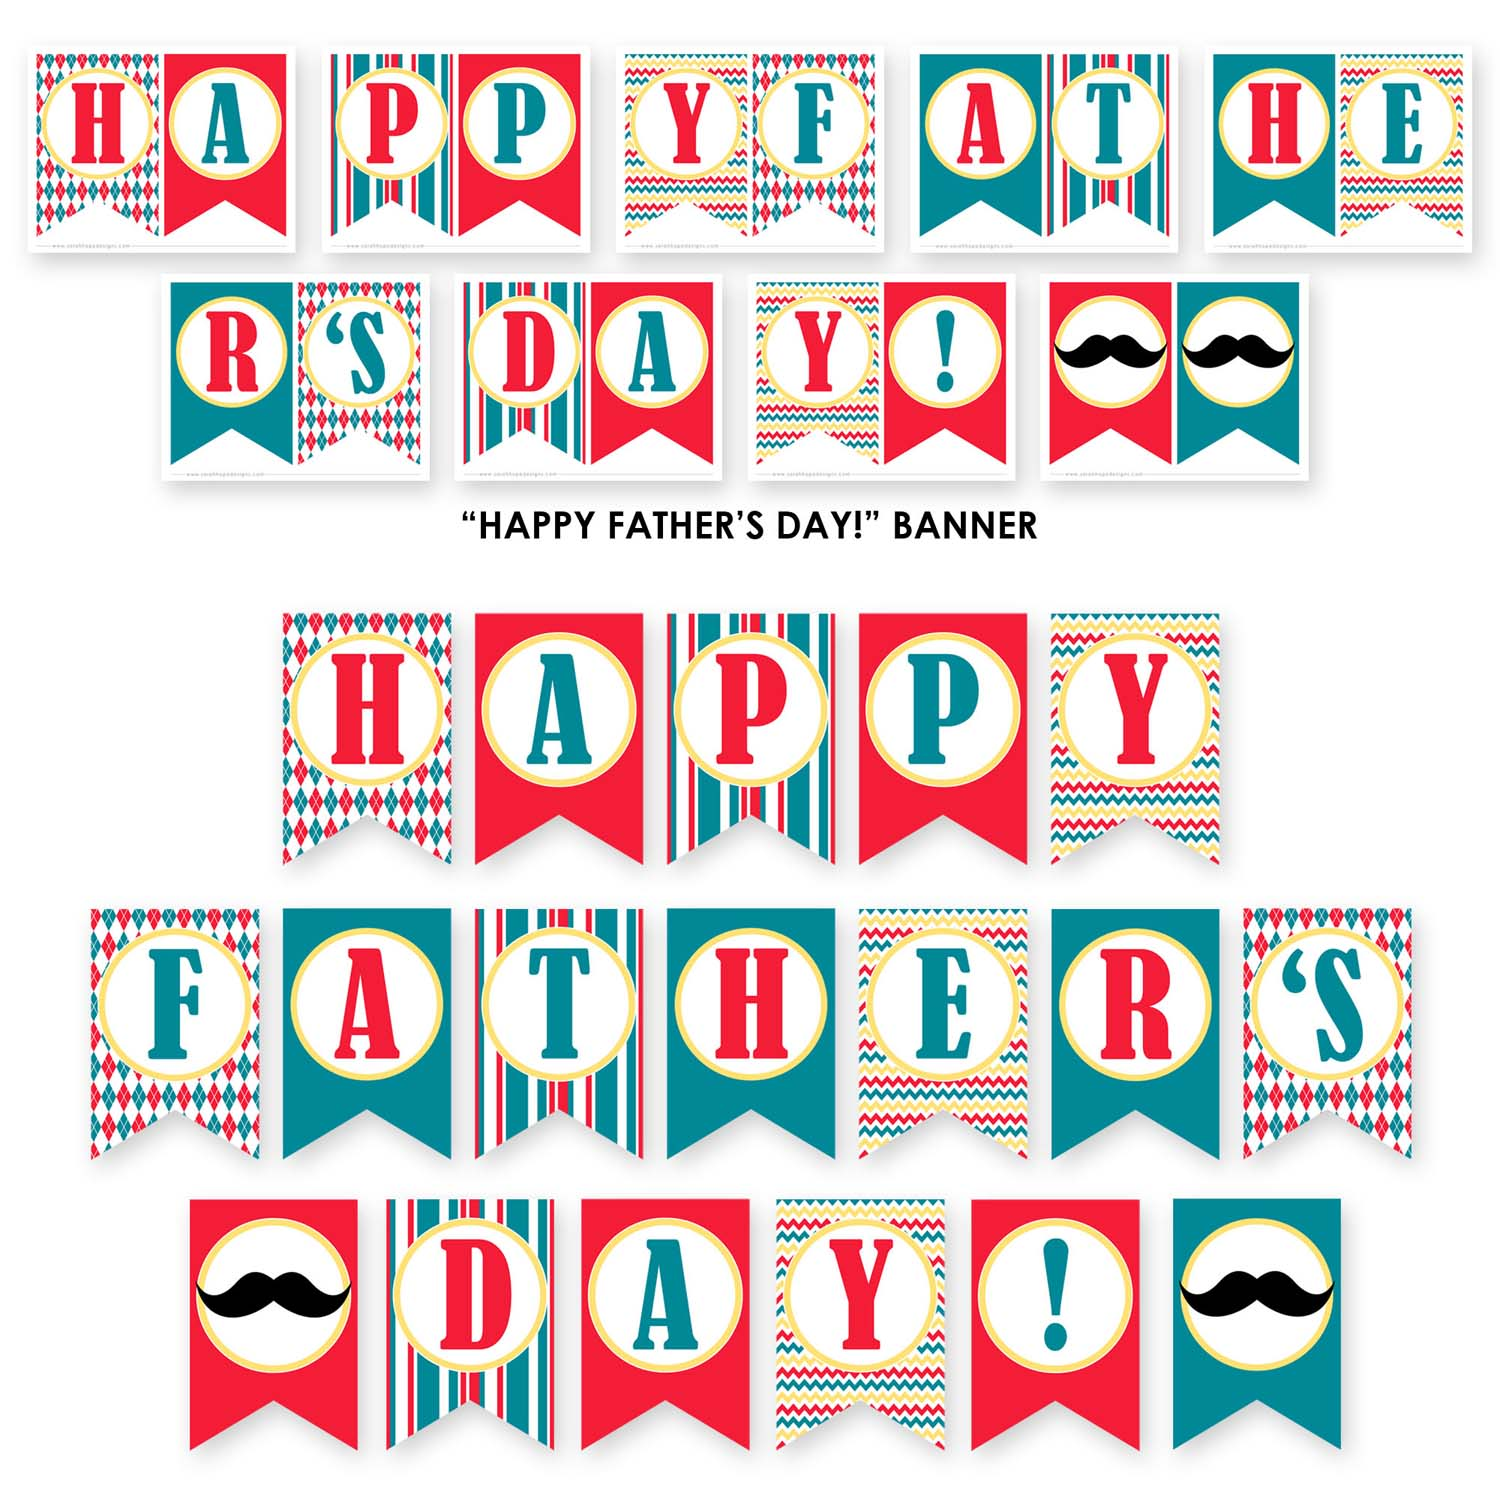 graphic relating to Happy Father's Day Banner Printable titled Free of charge Fathers Working day Get together Printables in opposition to Sarah Anticipate Strategies